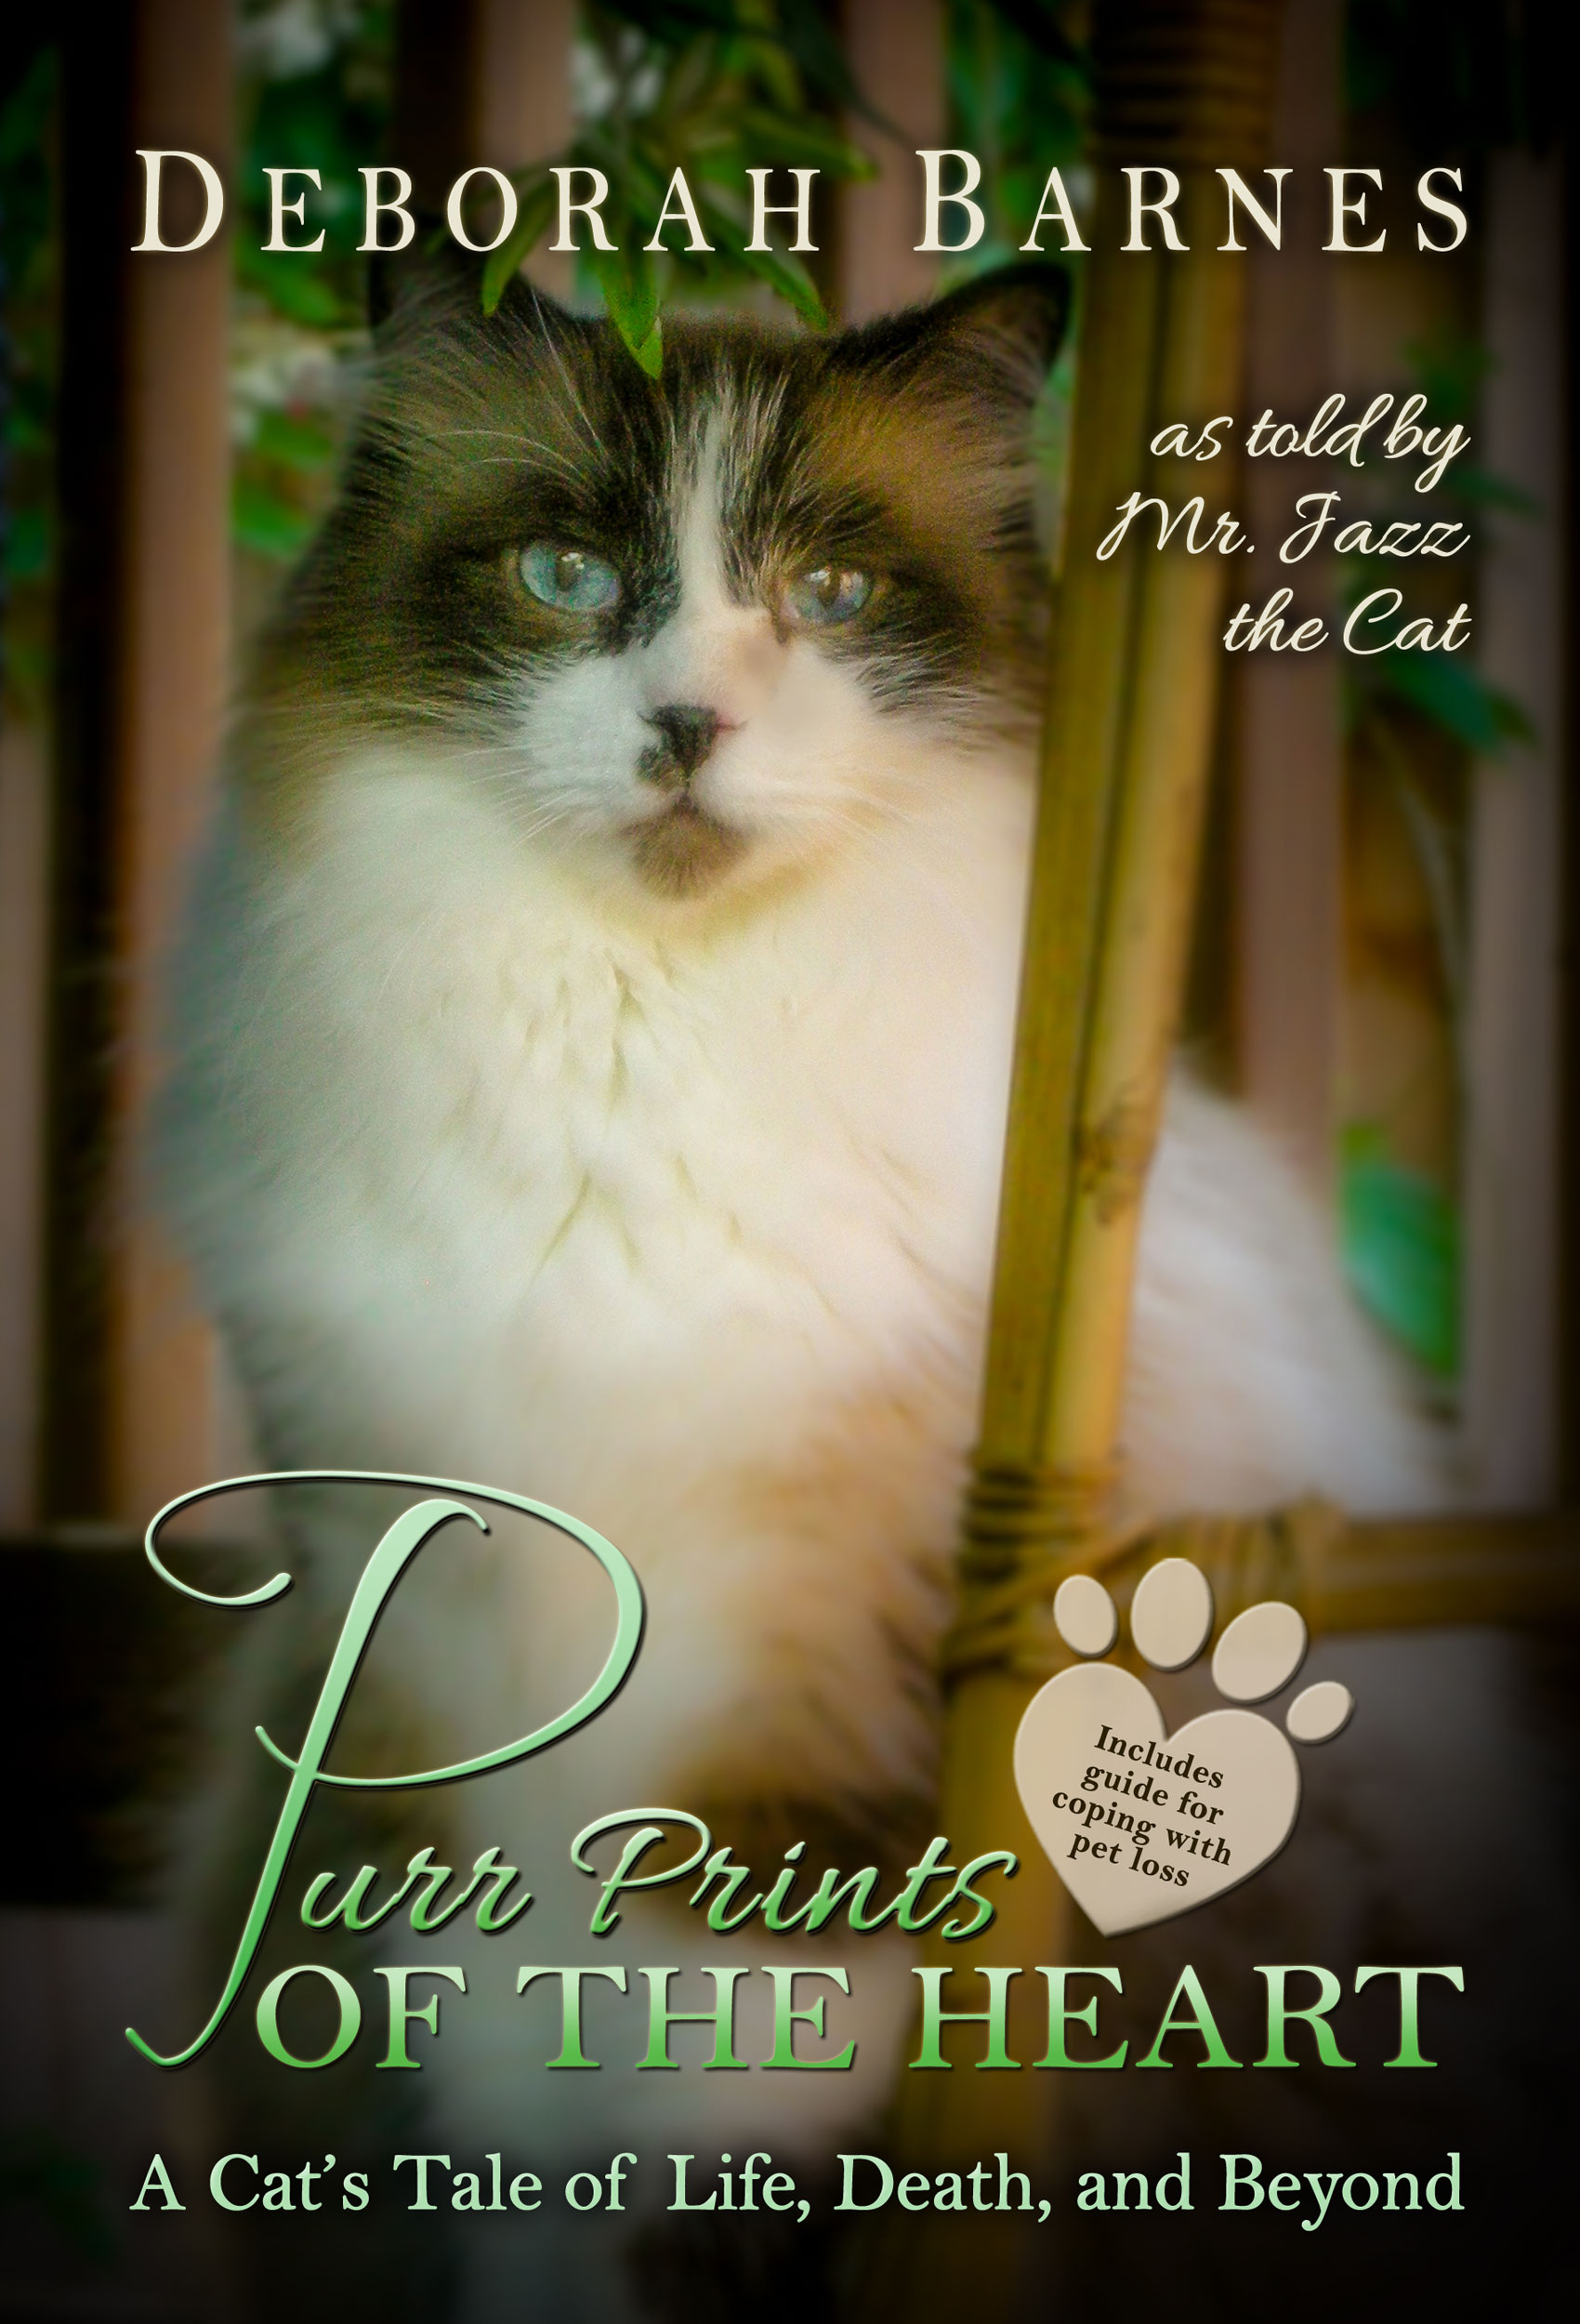 Purr Prints of the Heart is a book to help people with pet loss and grieving as written as a meow memoir